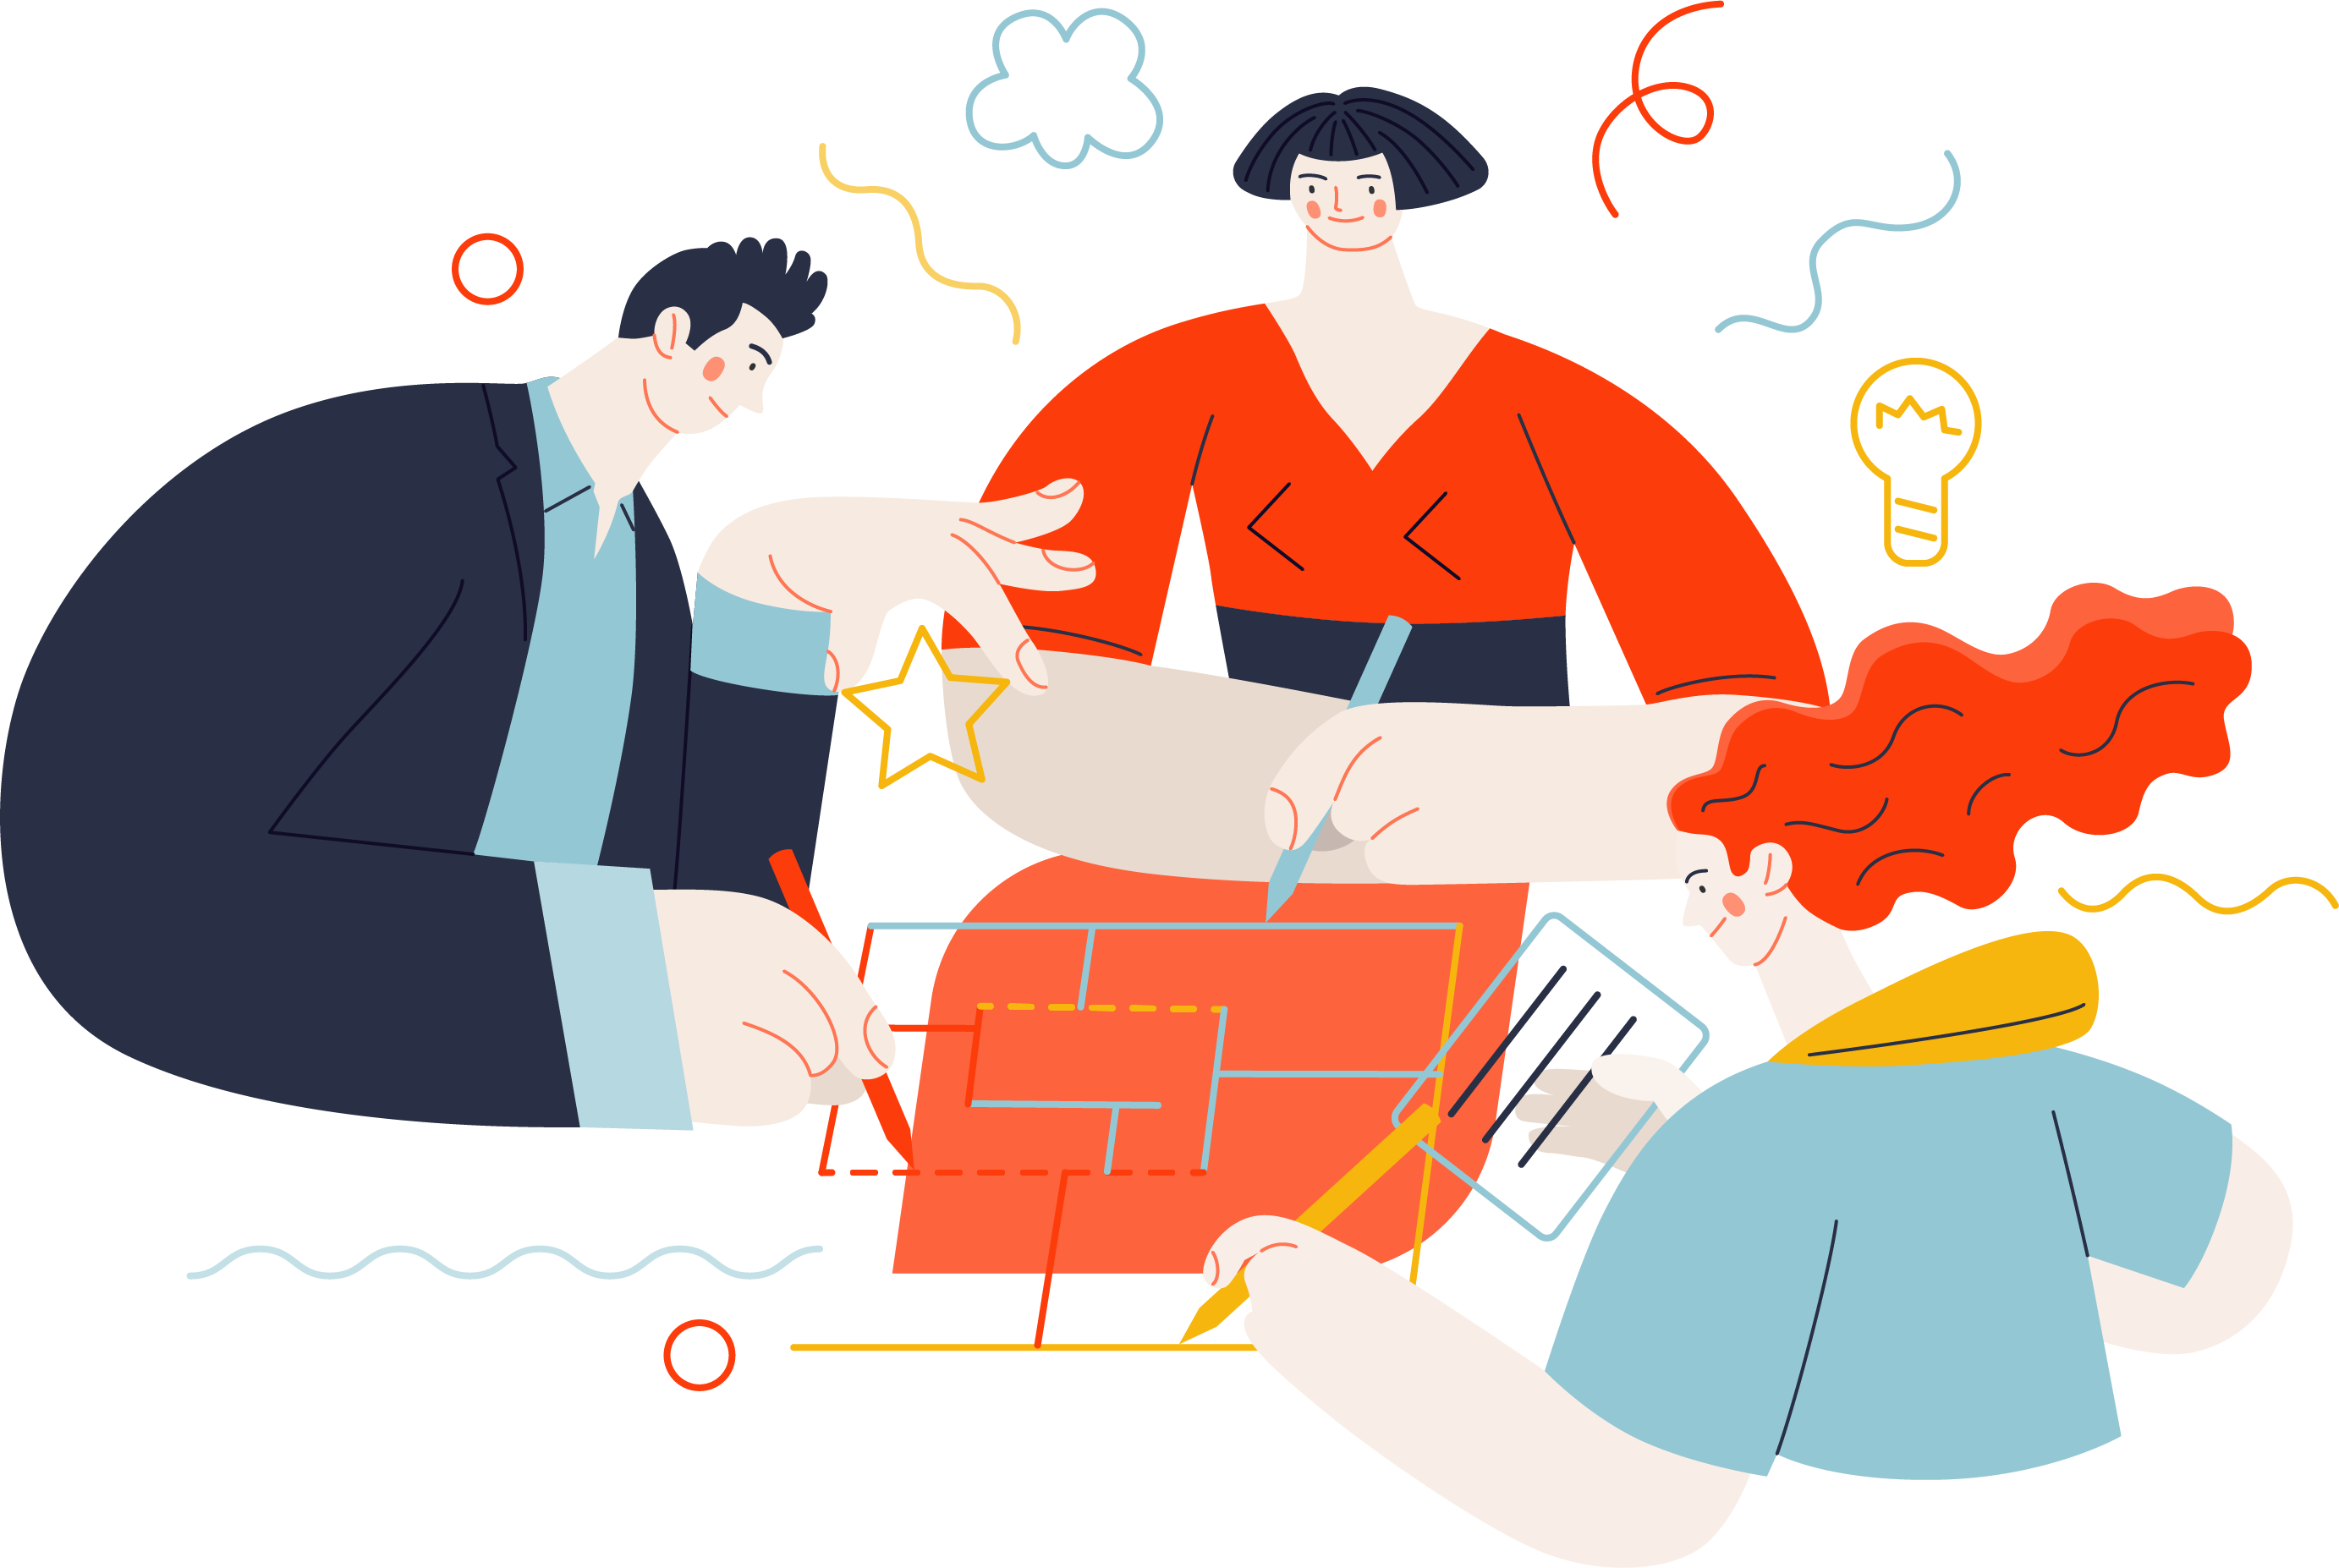 An Illustration of a group of people working on some plans